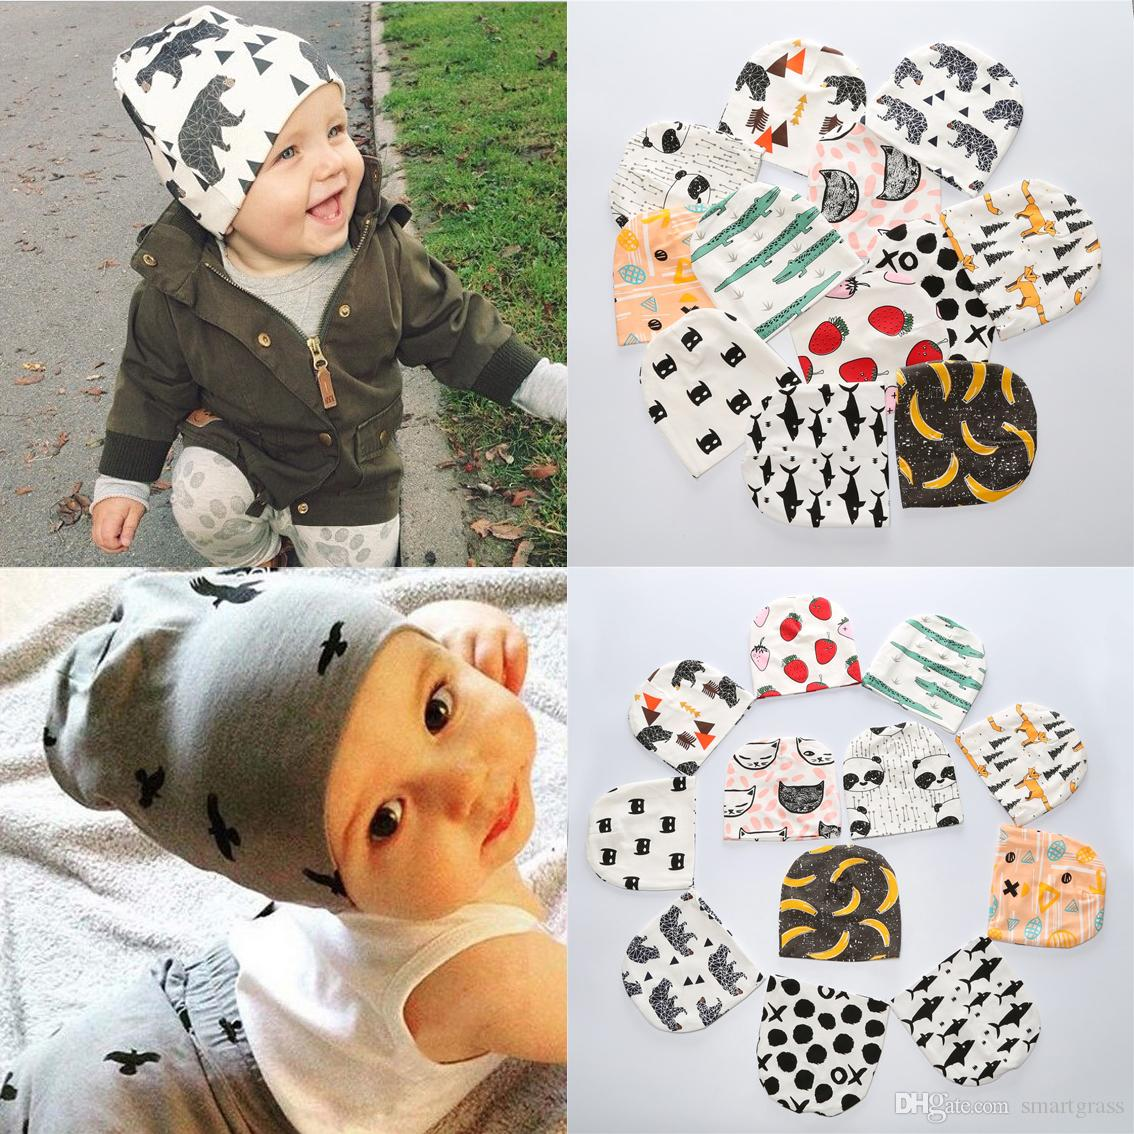 e88adb8a9 2019 26 Patterns Ins Baby Hats Cute Printed Baby Beanie Hat Boy Girl Ear  Muff Newborn Cotton Toddler Hats Baby Cap 16112201 From Smartgrass, $2.34 |  DHgate.